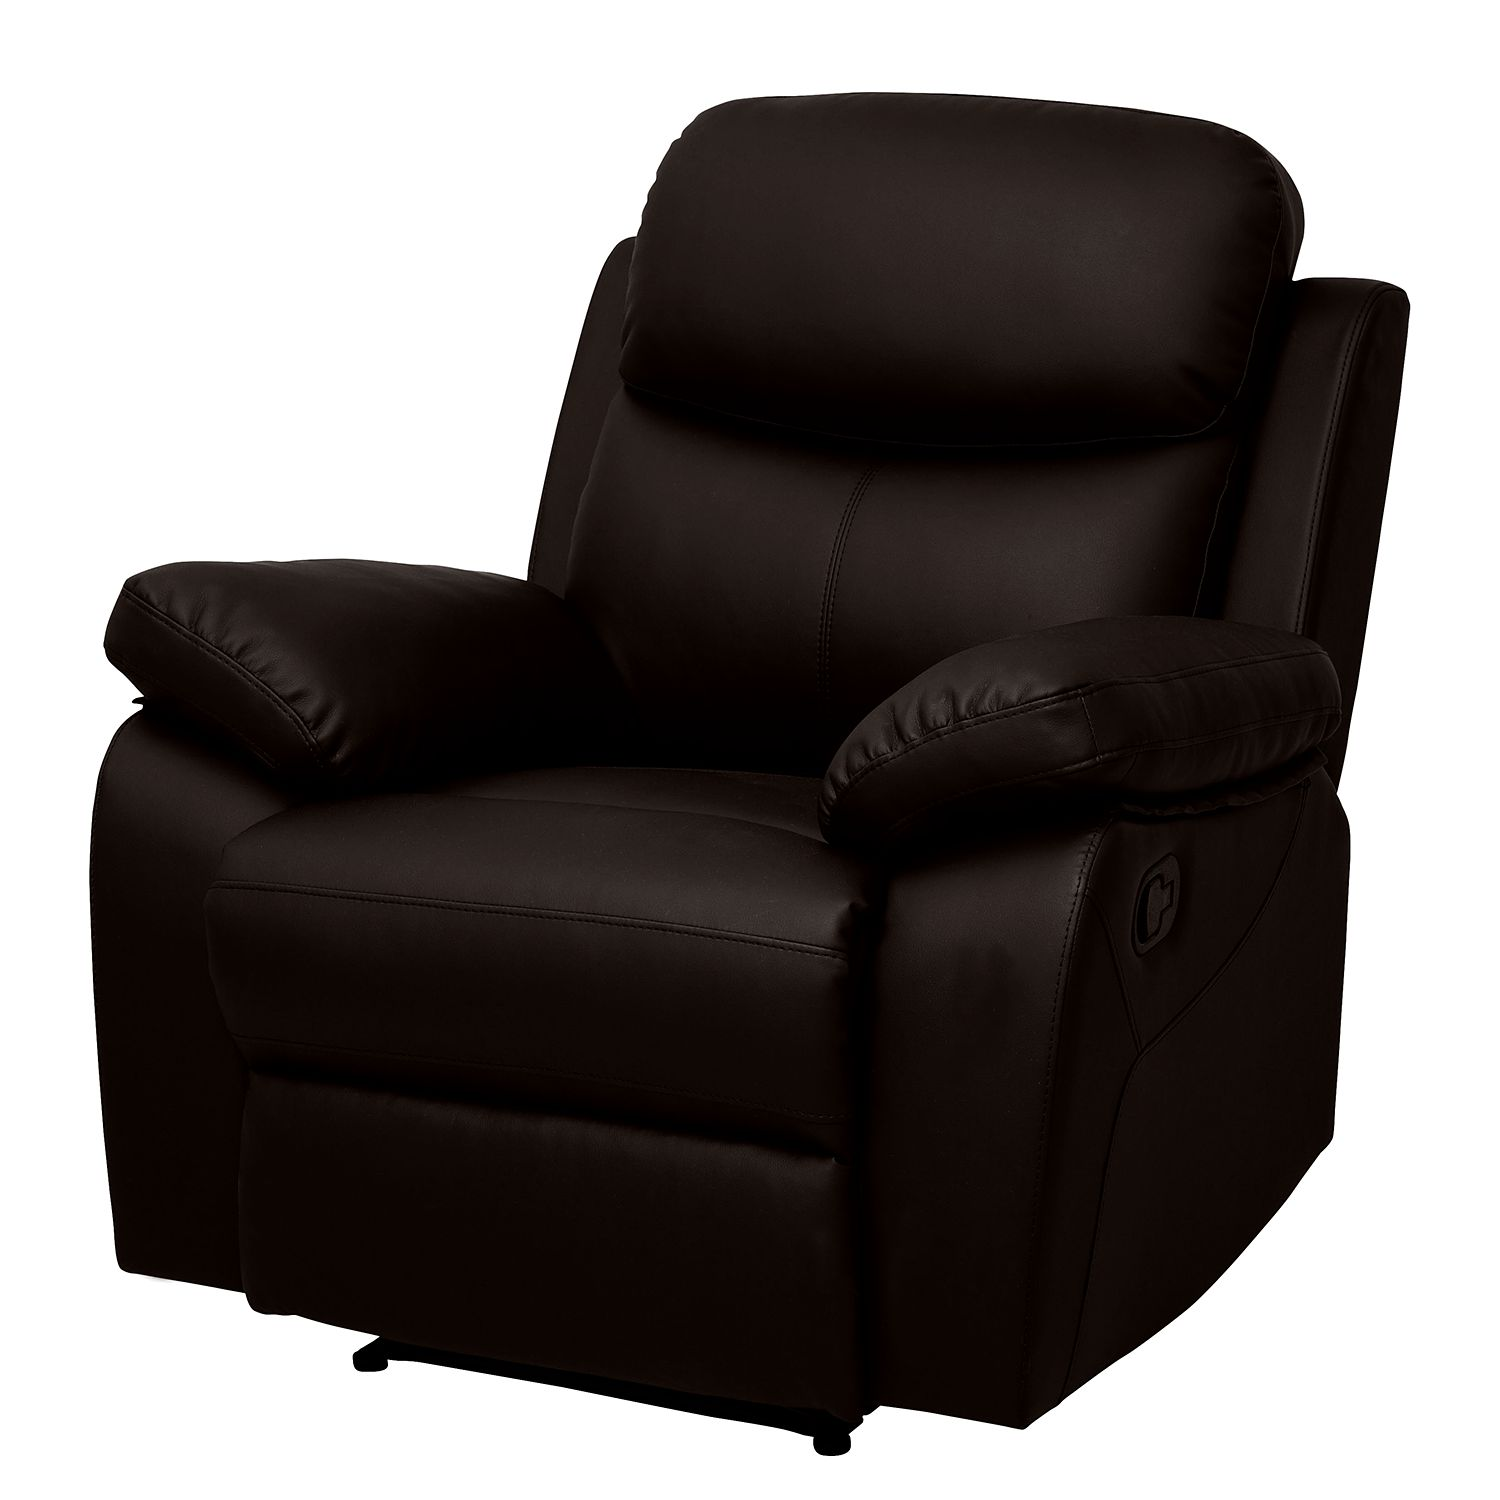 Cafe Sessel Home24 Relaxsessel Tetchill Cafe Konrad Vib